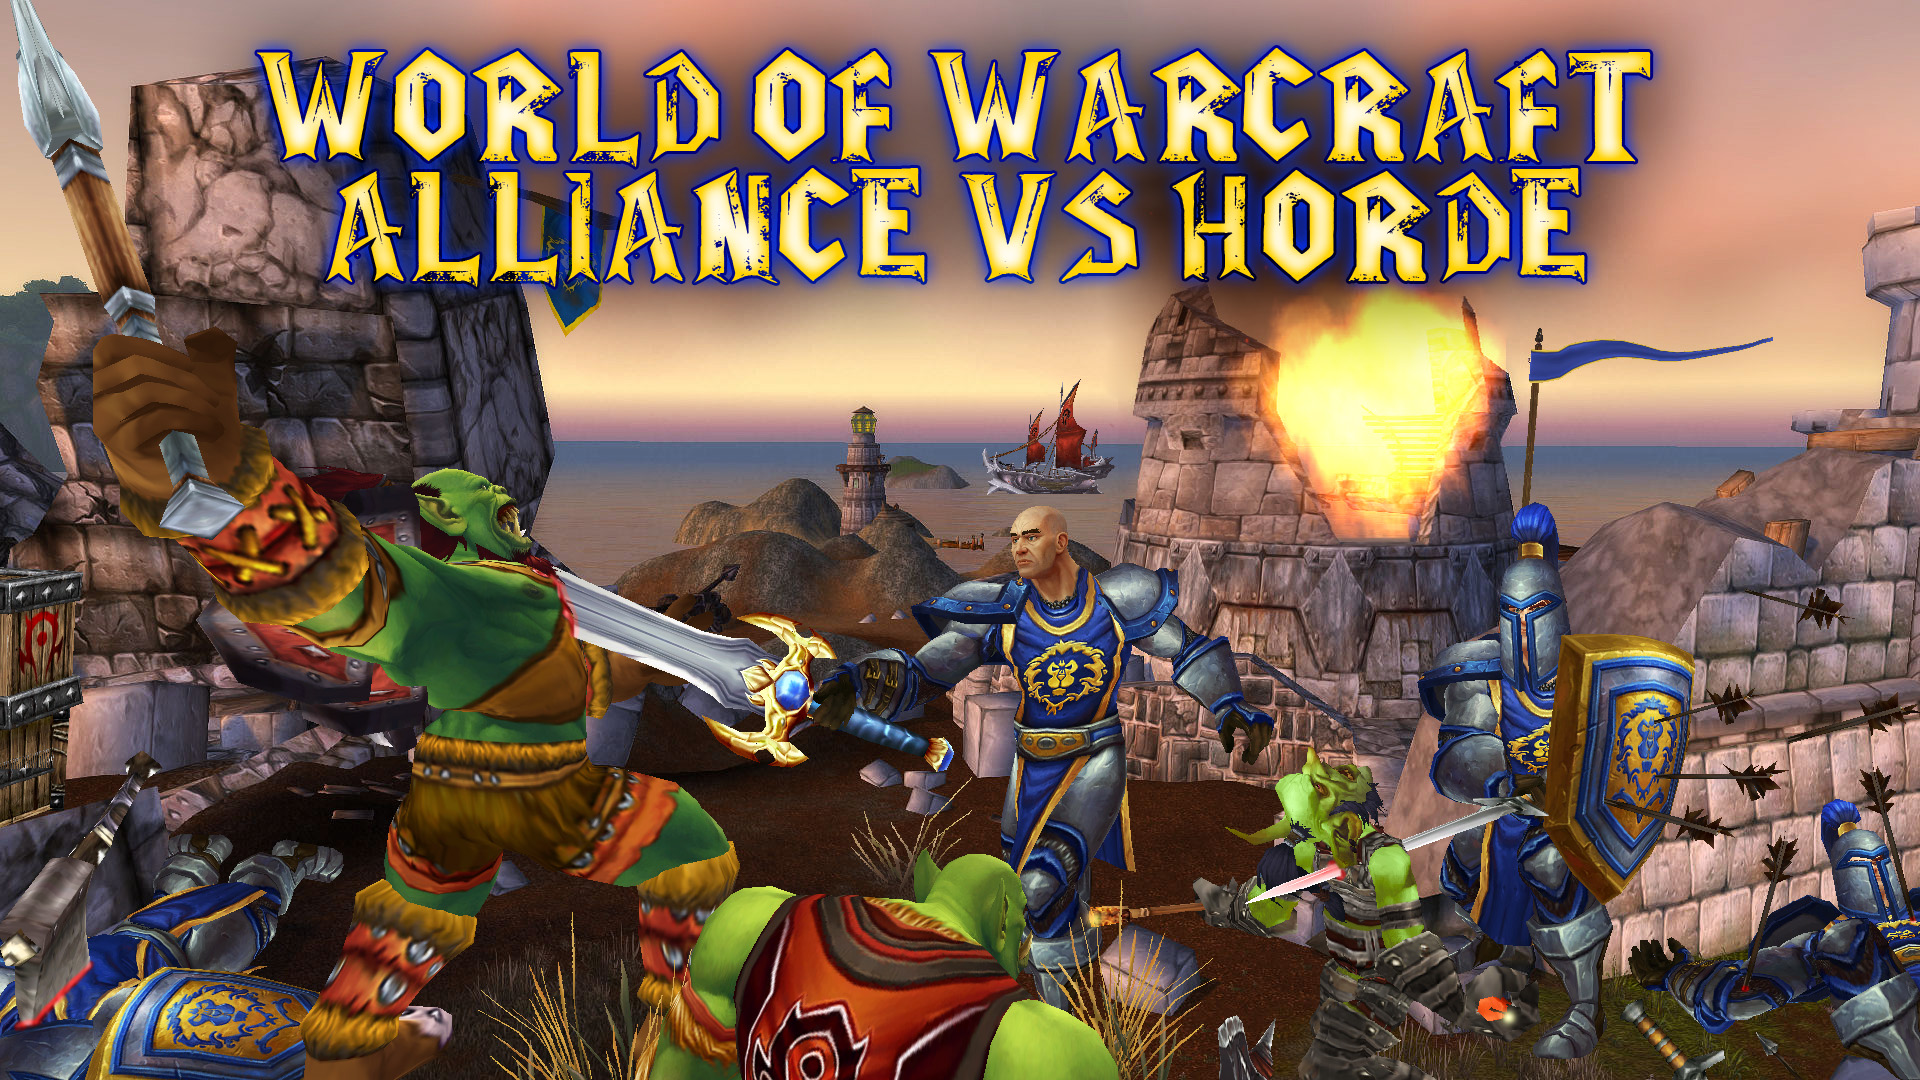 World Of Warcraft Wallpaper Alliance Vs Horde Perk By Percy1985 On